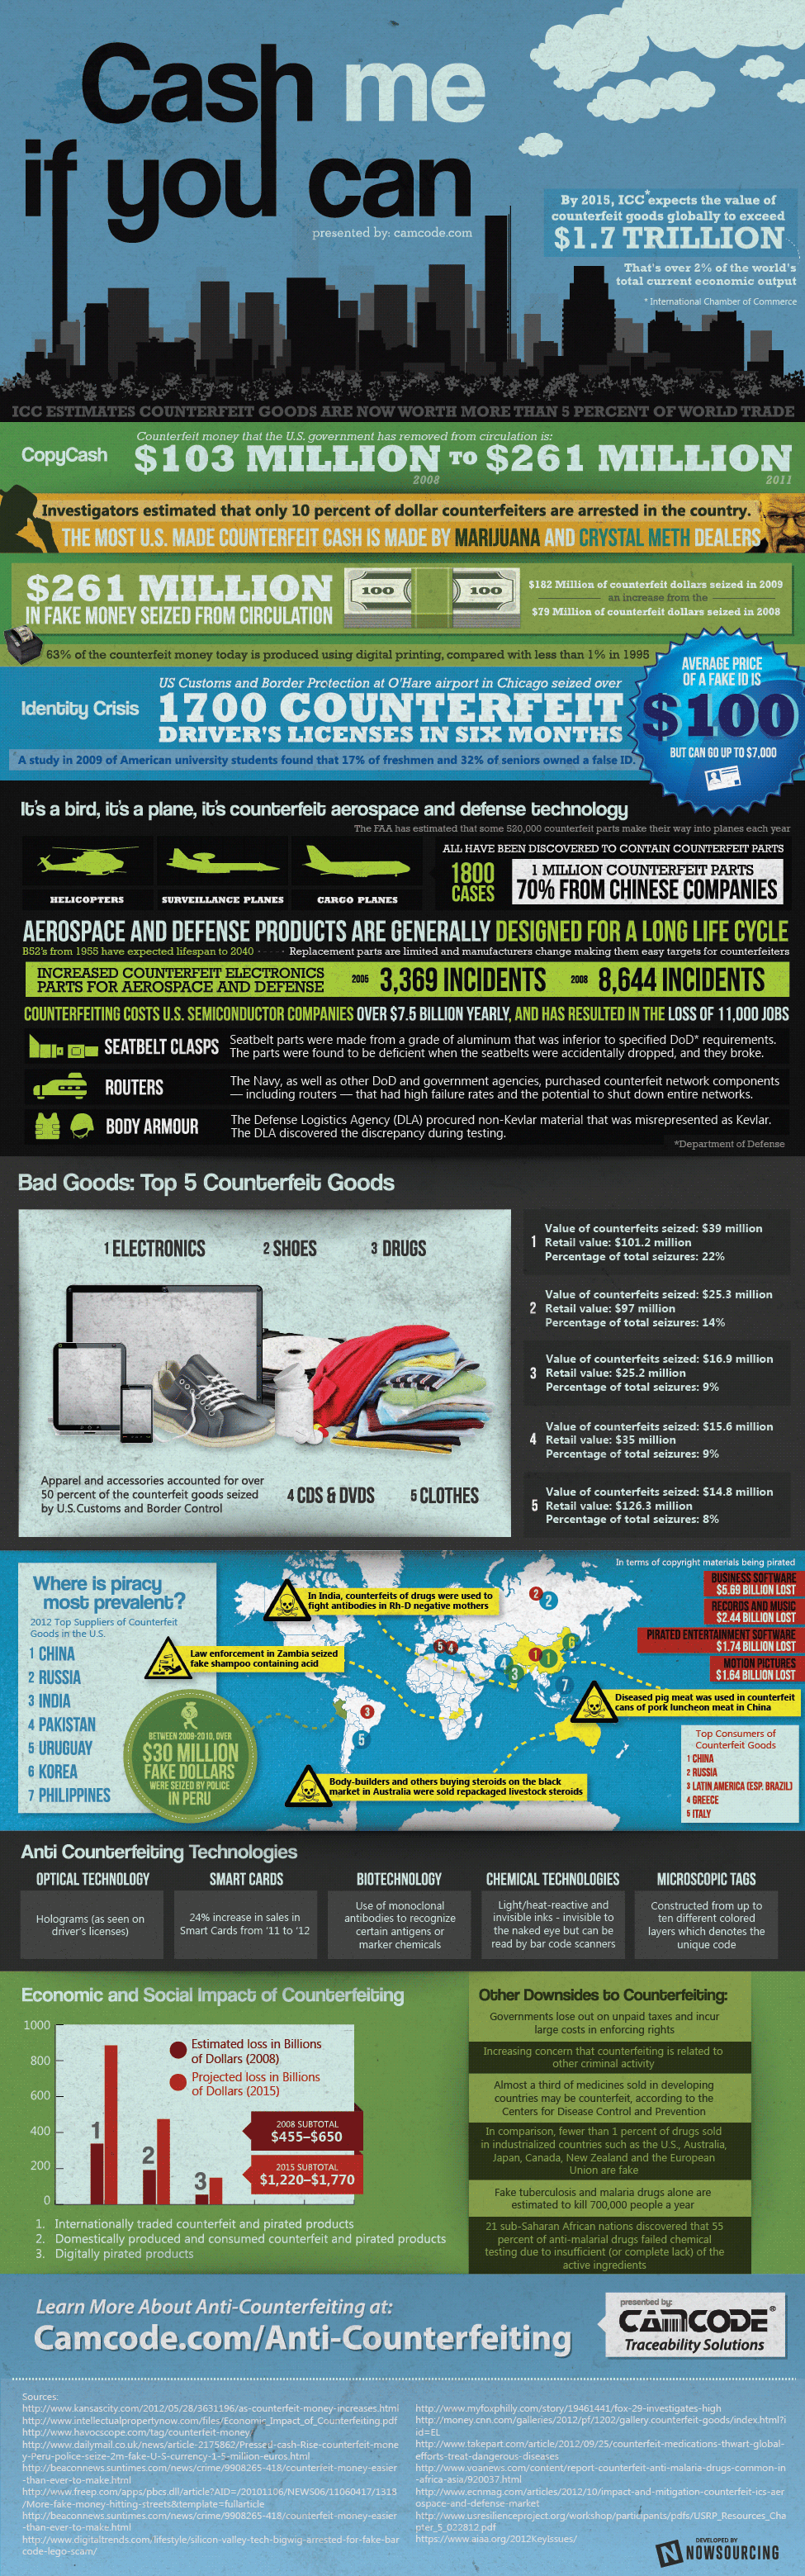 Camcode Counterfeiting Infographic